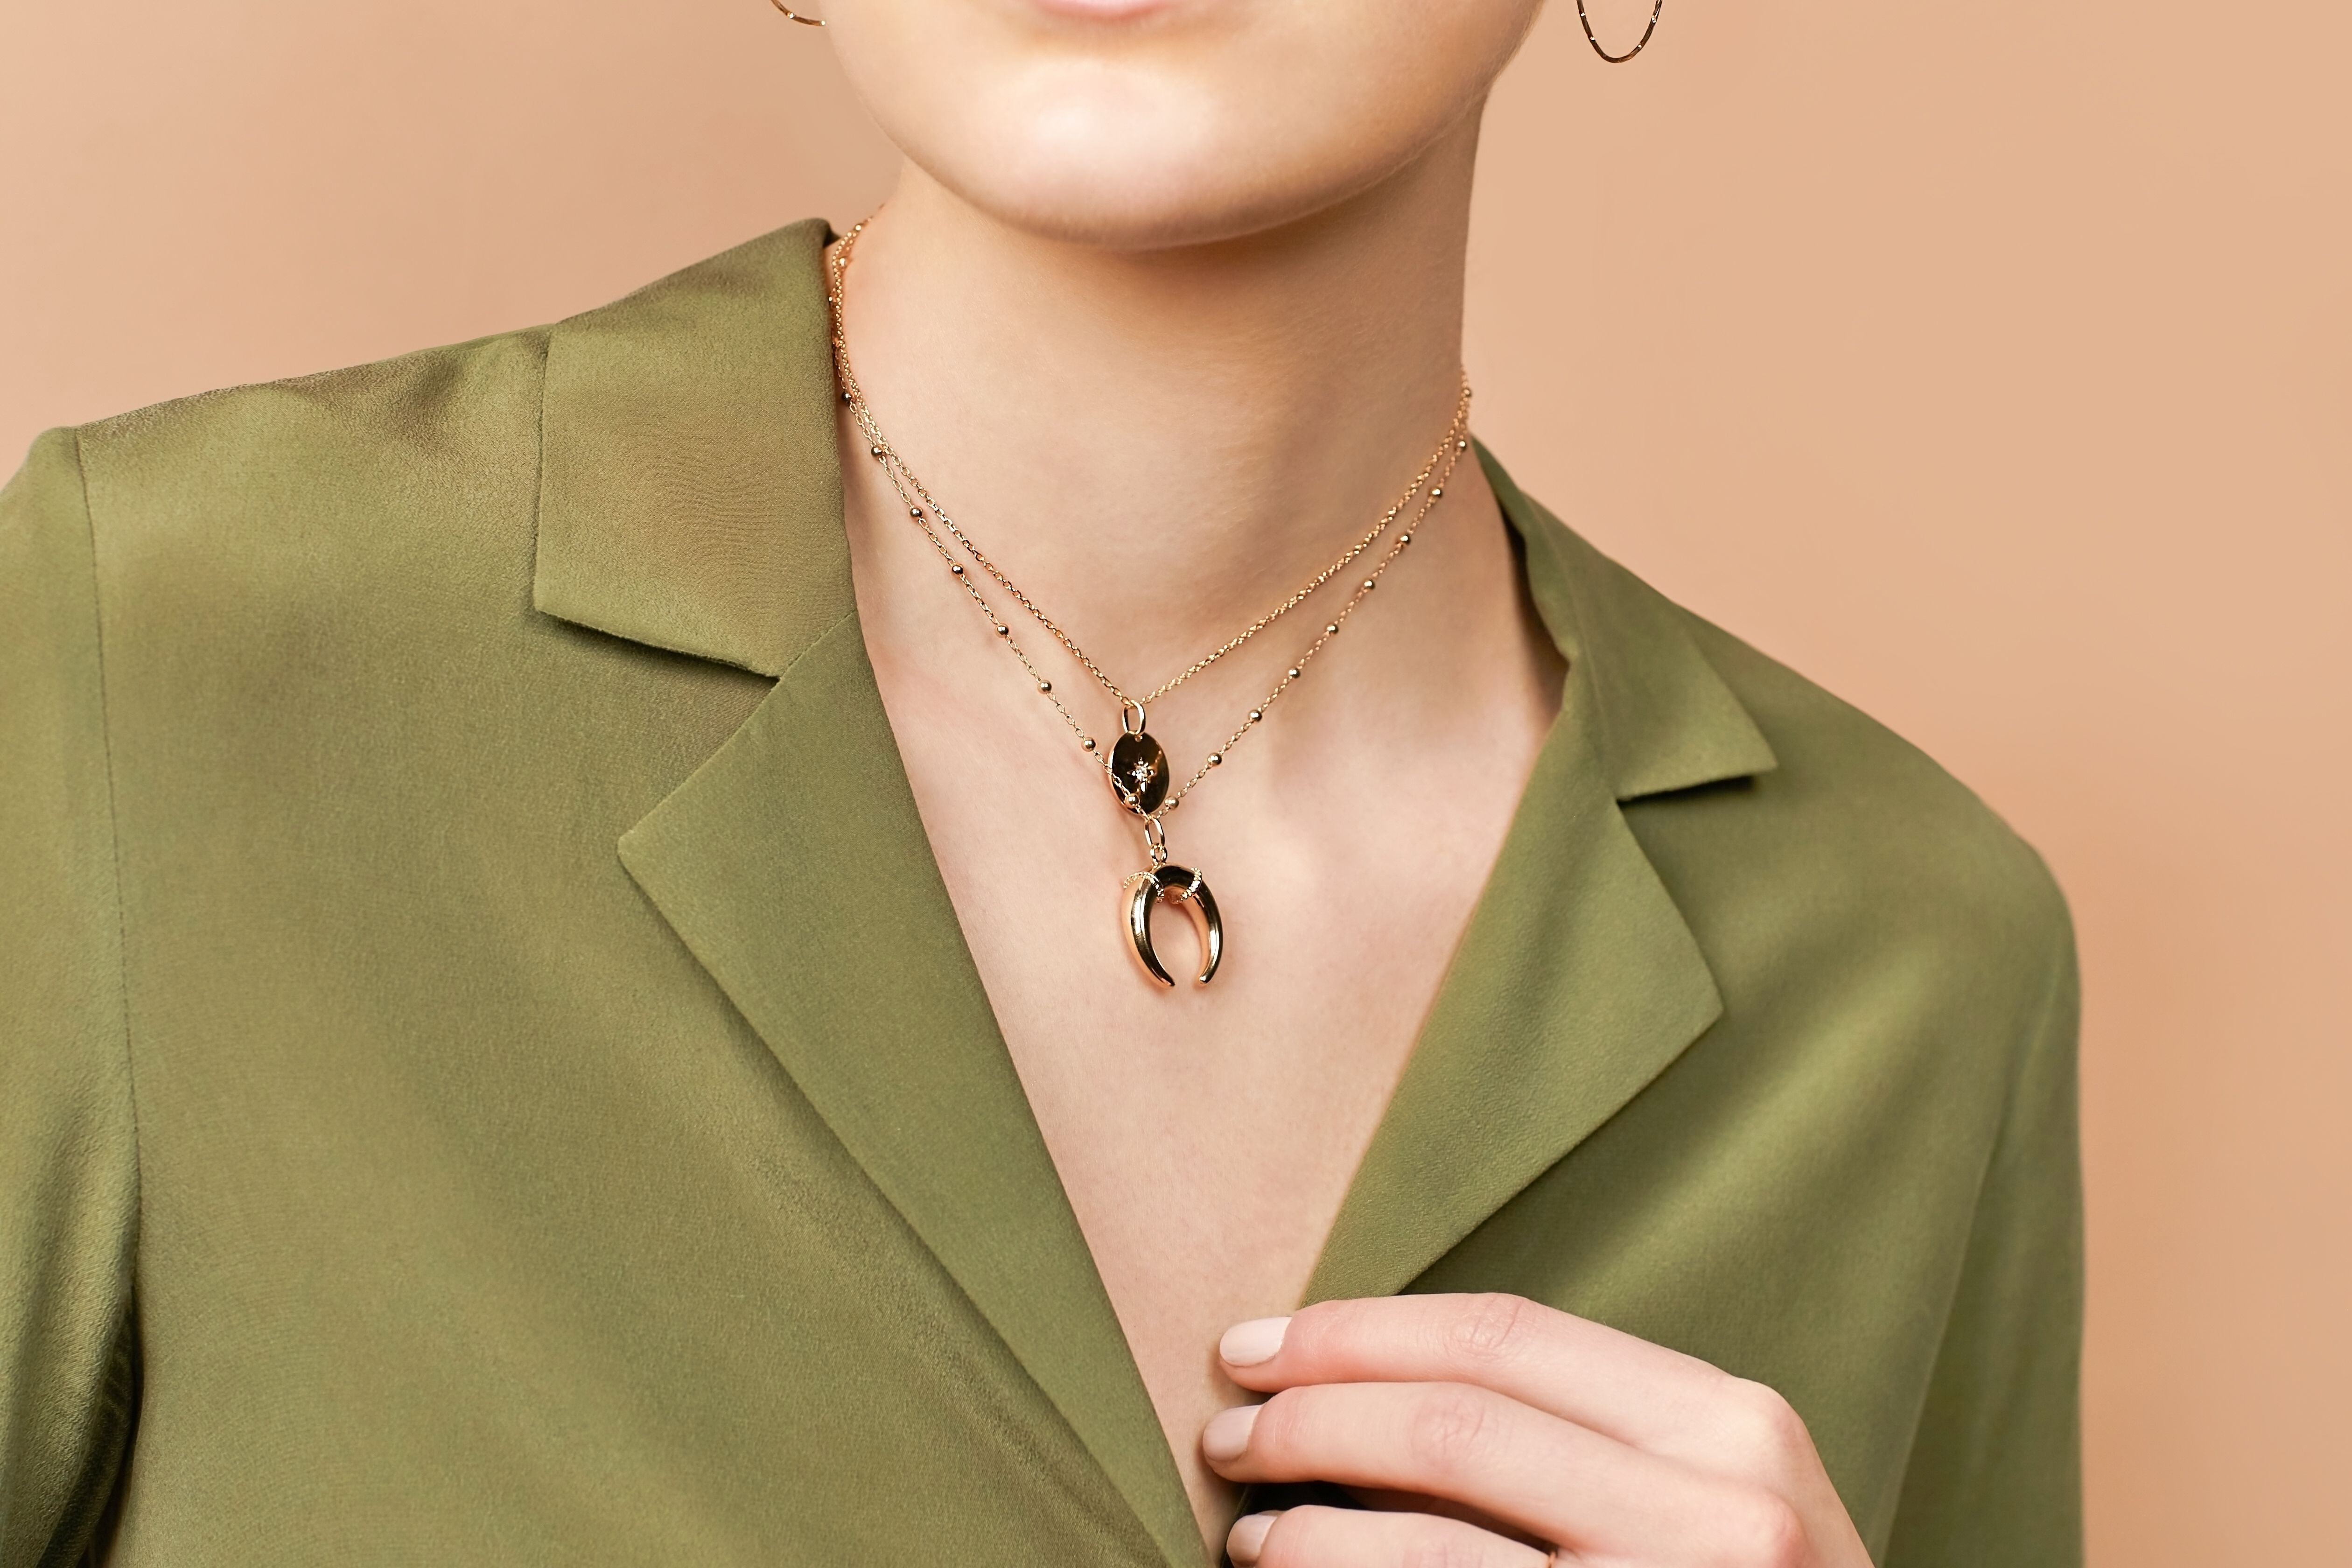 95ca5c63c51 Brooke necklace and Stella necklace #analuisany #analuisa #jewelry  #layerednecklace #goldjewelry #ootd. Find this Pin and more on Layered  Necklaces ...